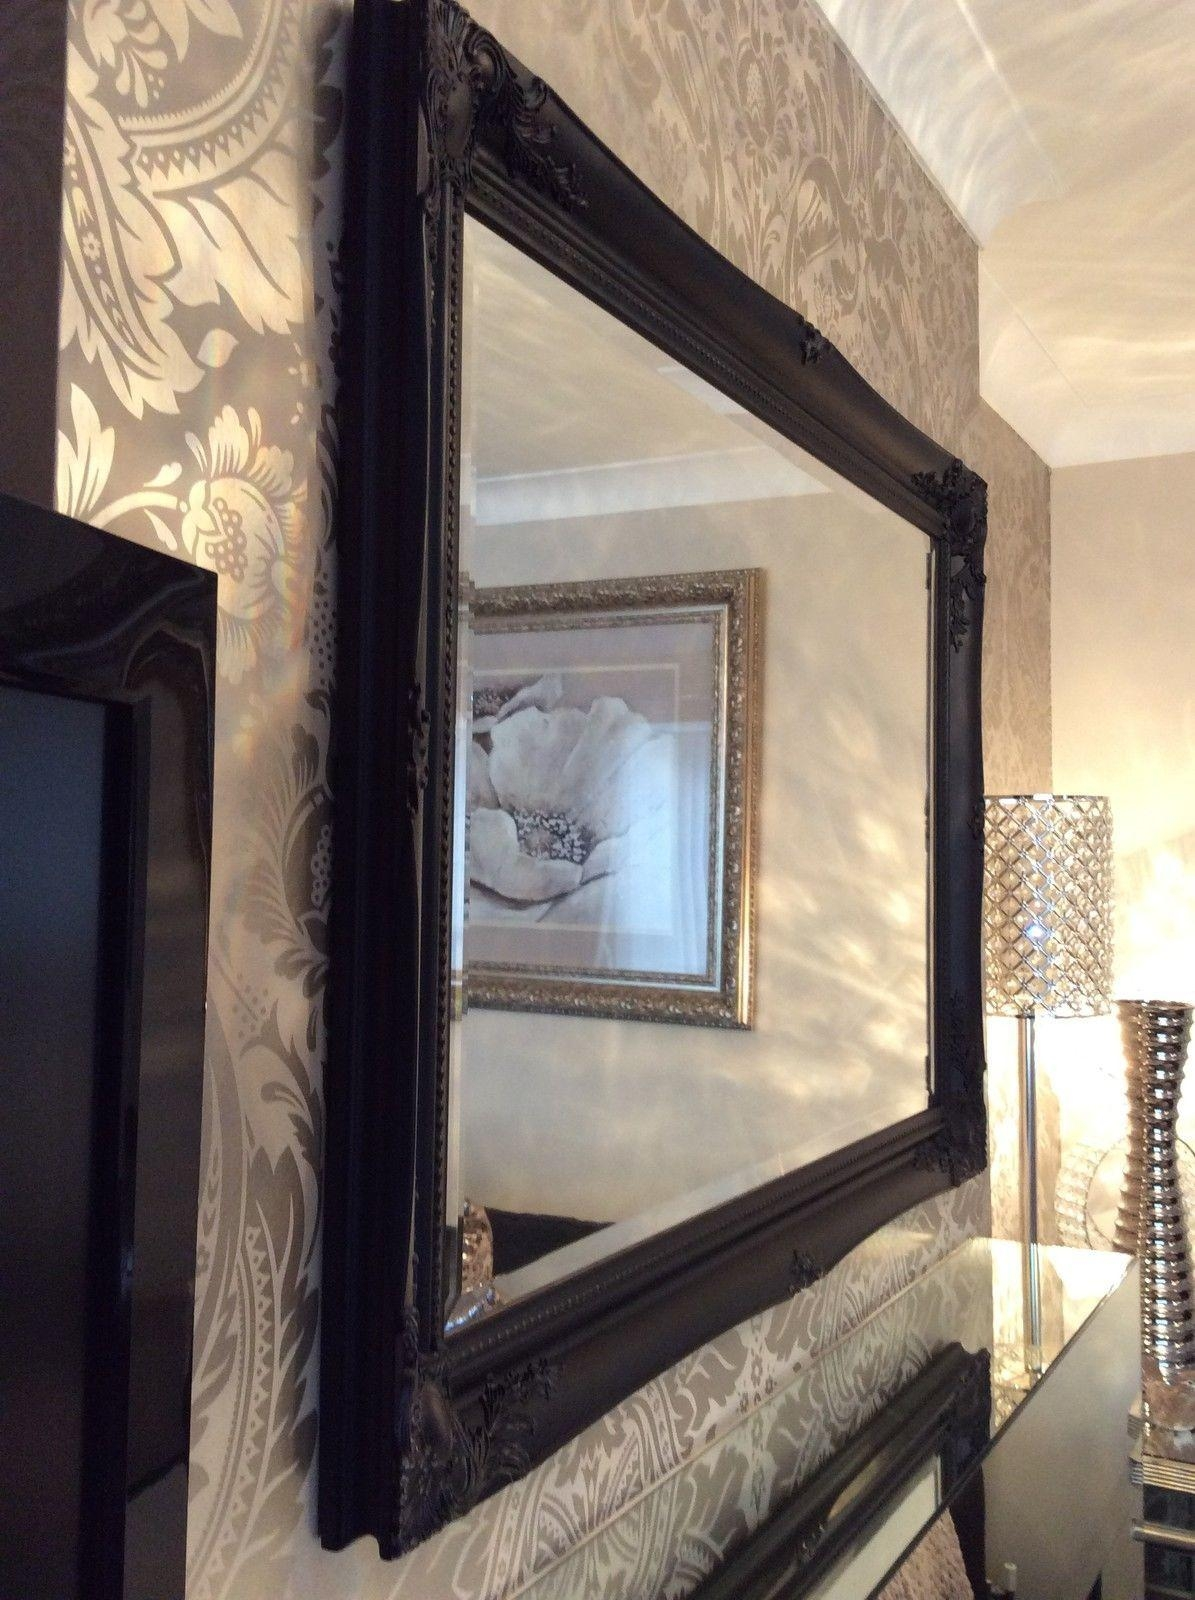 Black Shabby Chic Framed Ornate Overmantle Wall Mirror – Range Of In Large Black Mirror (Image 4 of 20)